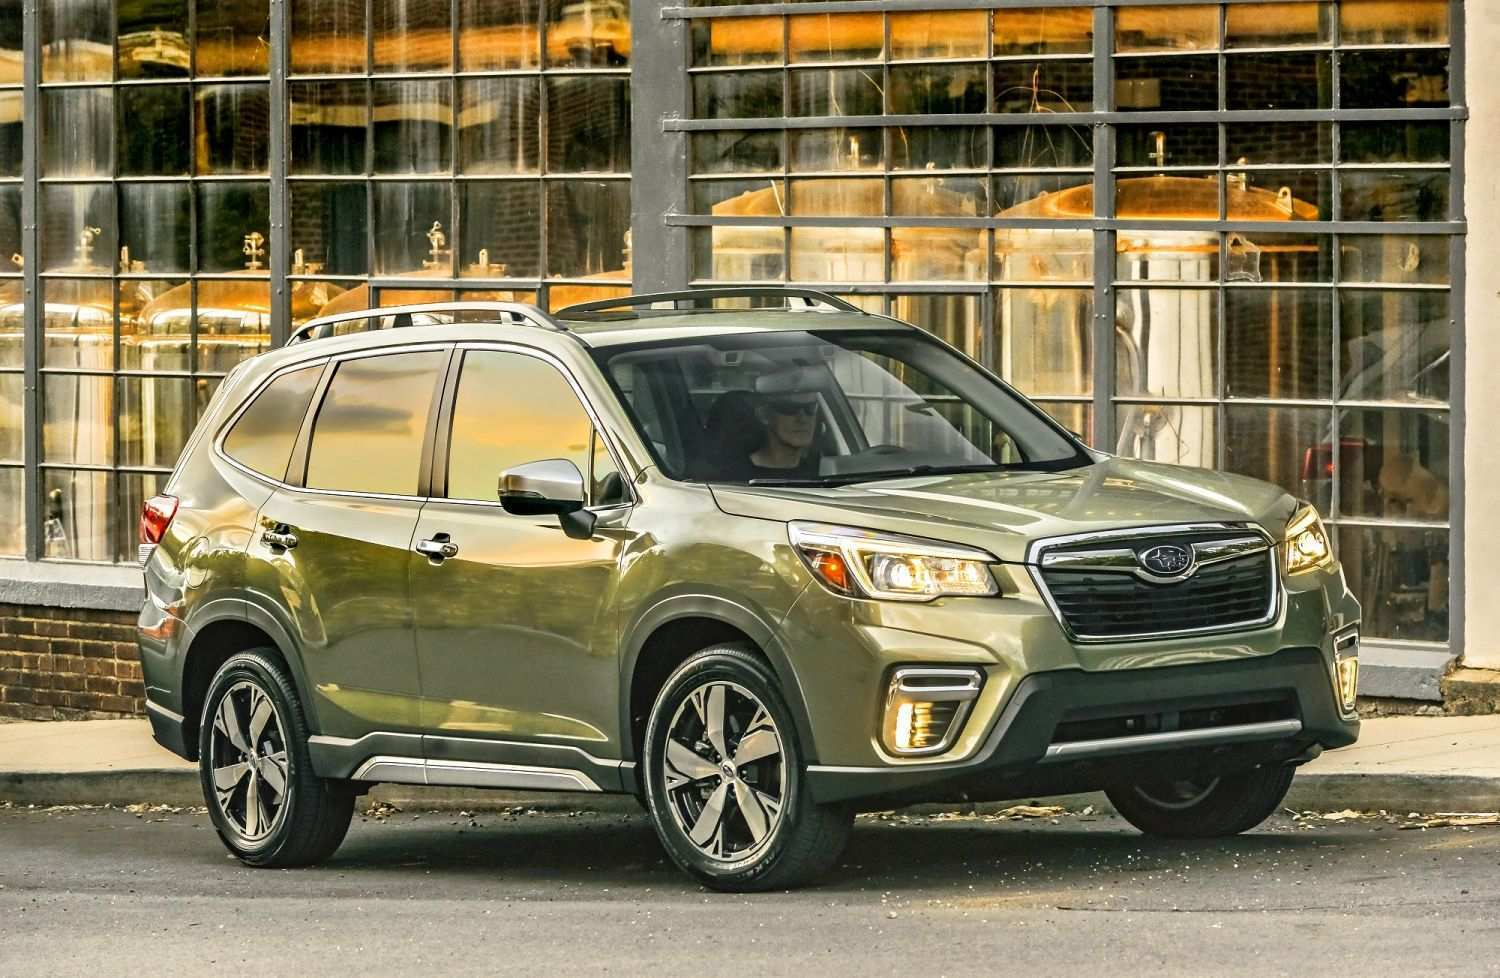 90 The Subaru Forester 2019 Ground Clearance Concept